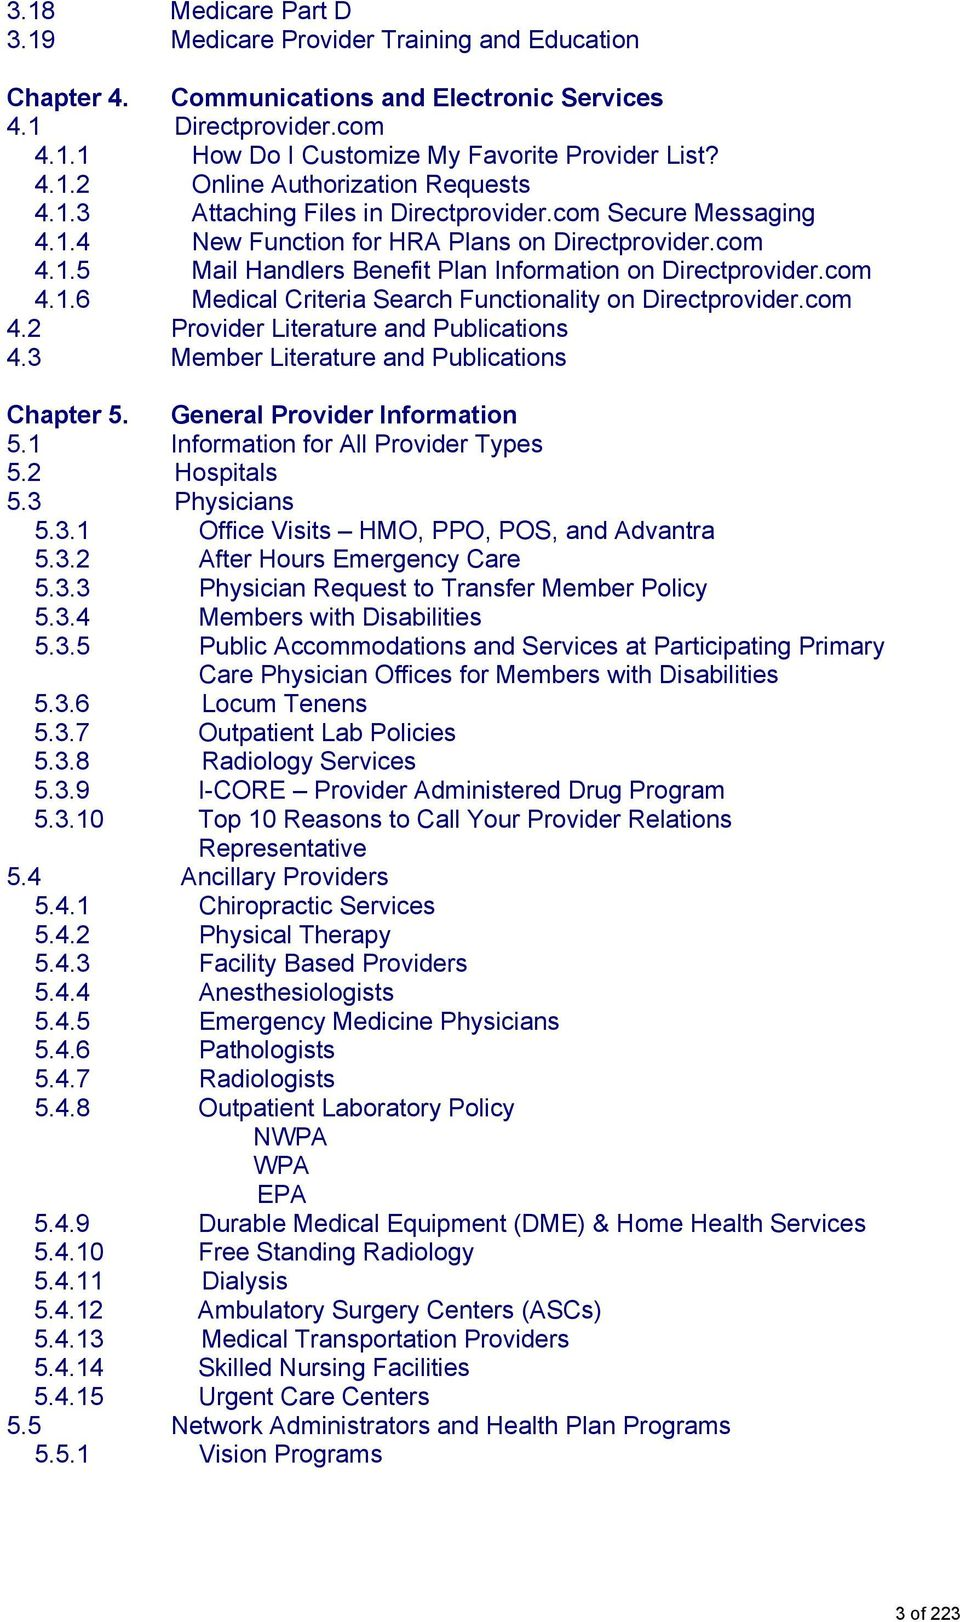 com 4.2 Provider Literature and Publications 4.3 Member Literature and Publications Chapter 5. General Provider Information 5.1 Information for All Provider Types 5.2 Hospitals 5.3 Physicians 5.3.1 Office Visits HMO, PPO, POS, and Advantra 5.